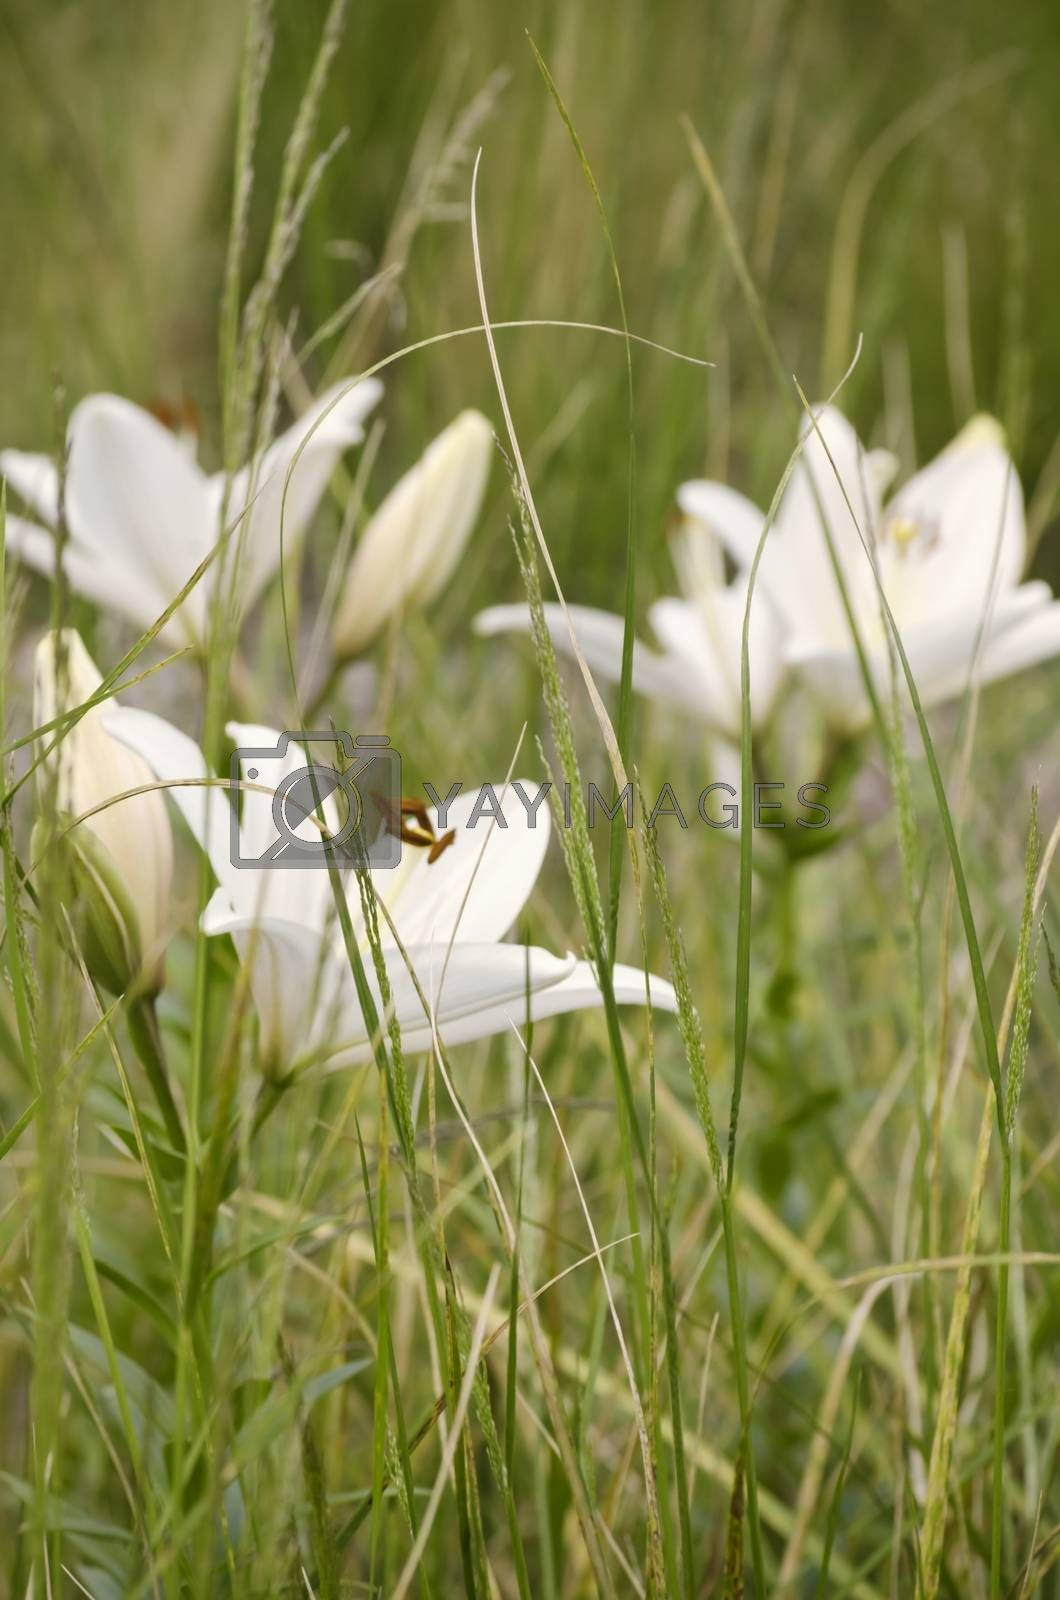 White Lily Flower Over Grass Background